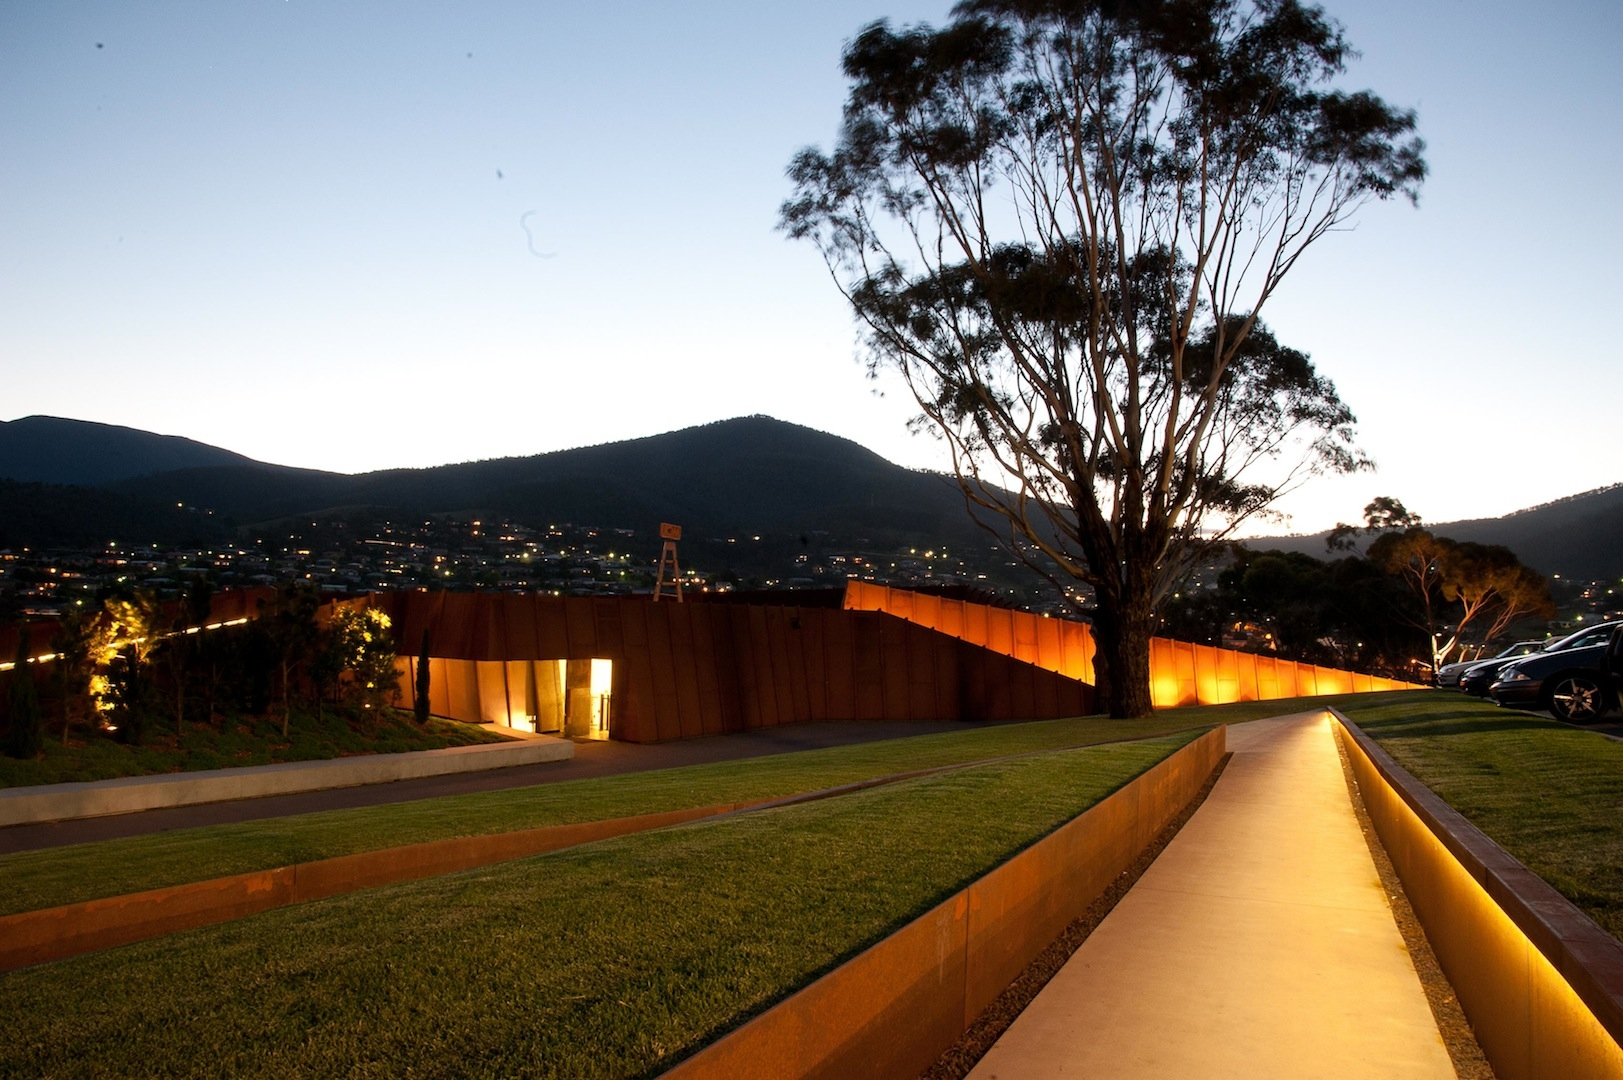 Museum of Old and New Art (MONA) photo